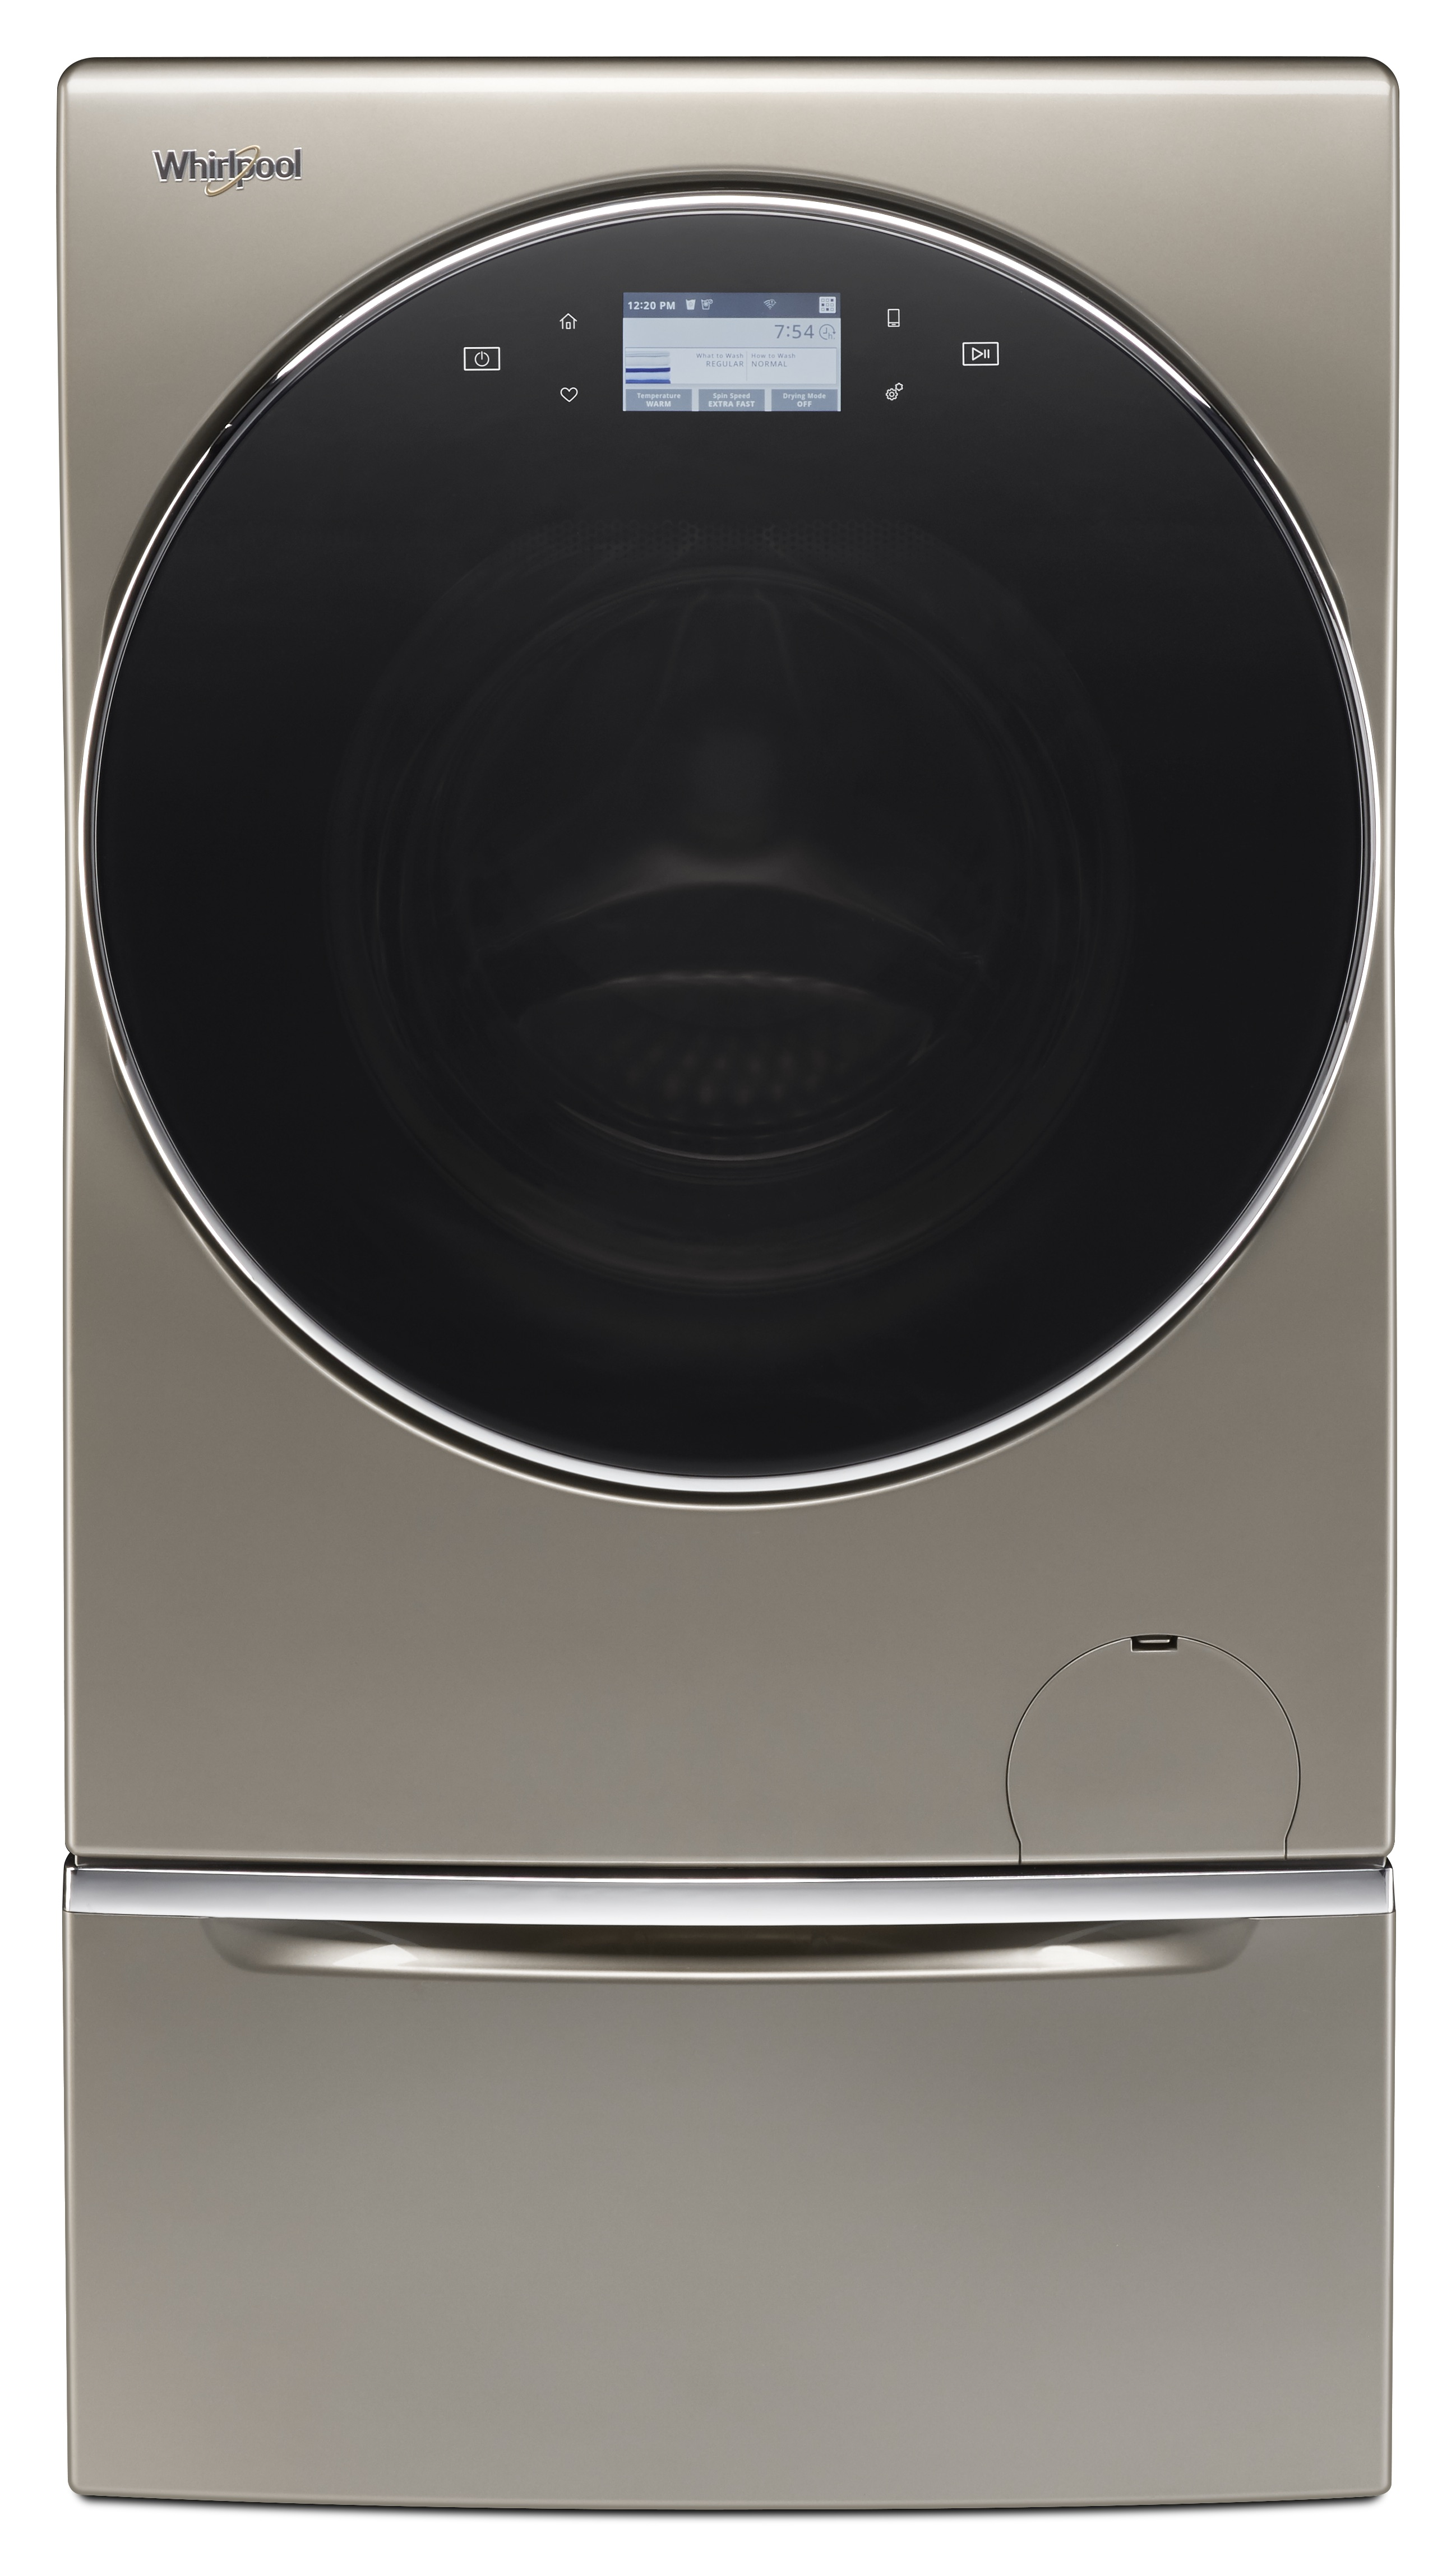 Whirlpool Smart All in One Washer & Dryer